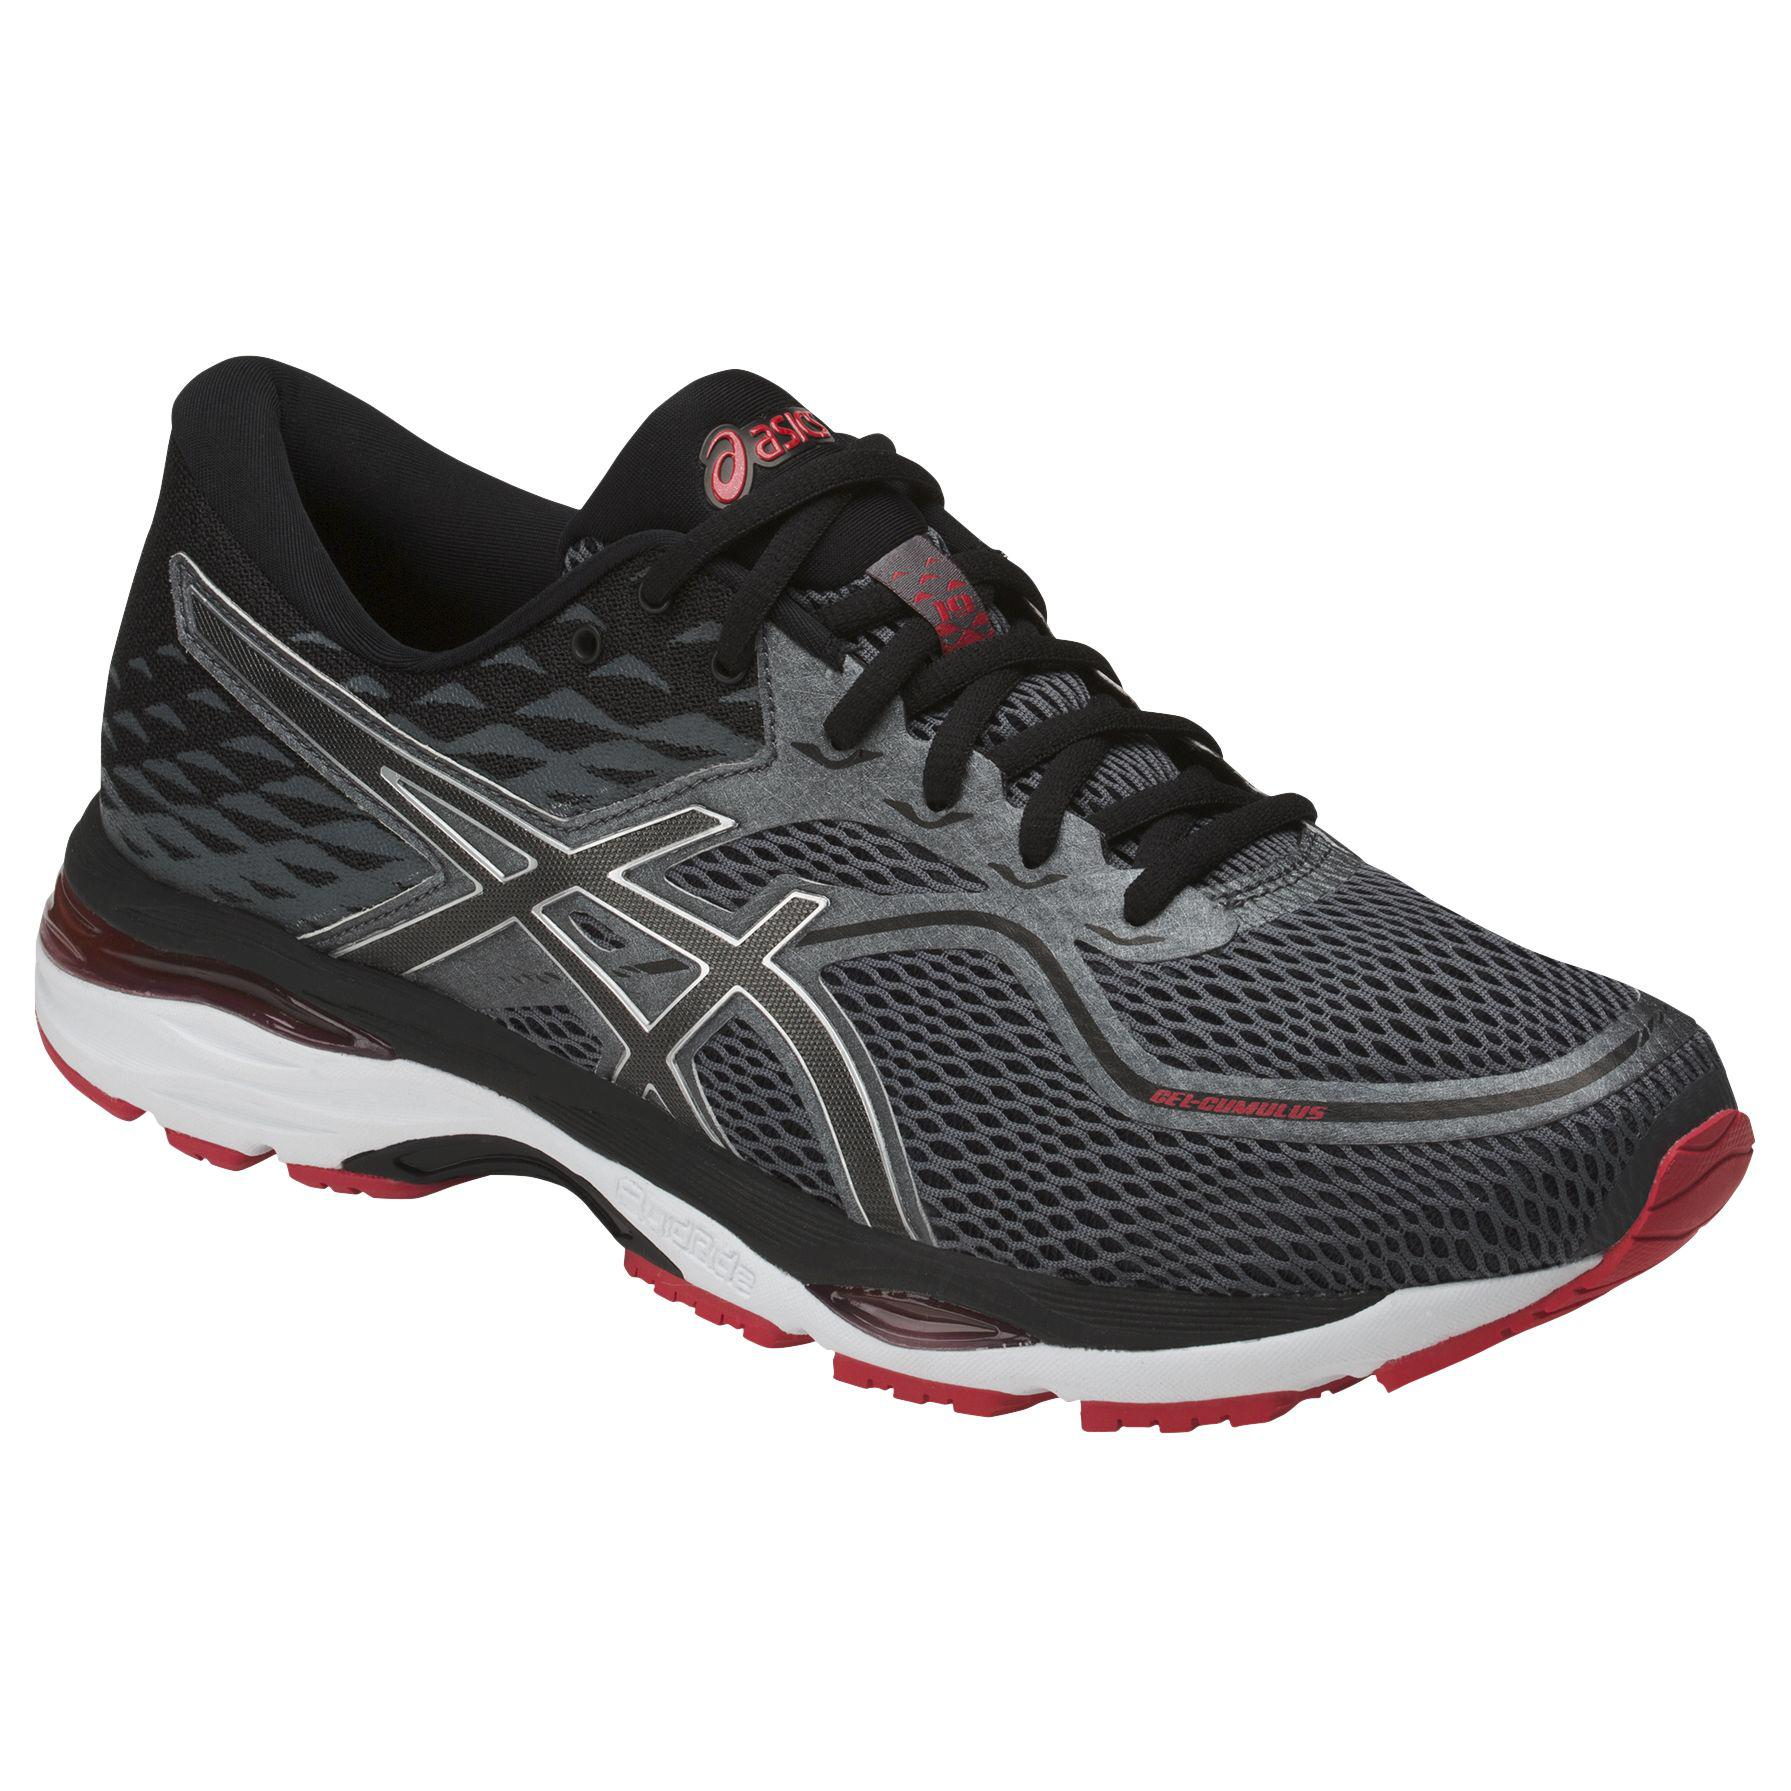 Asics Gel-cumulus 19 Men's Running Shoes in Black for Men - Lyst